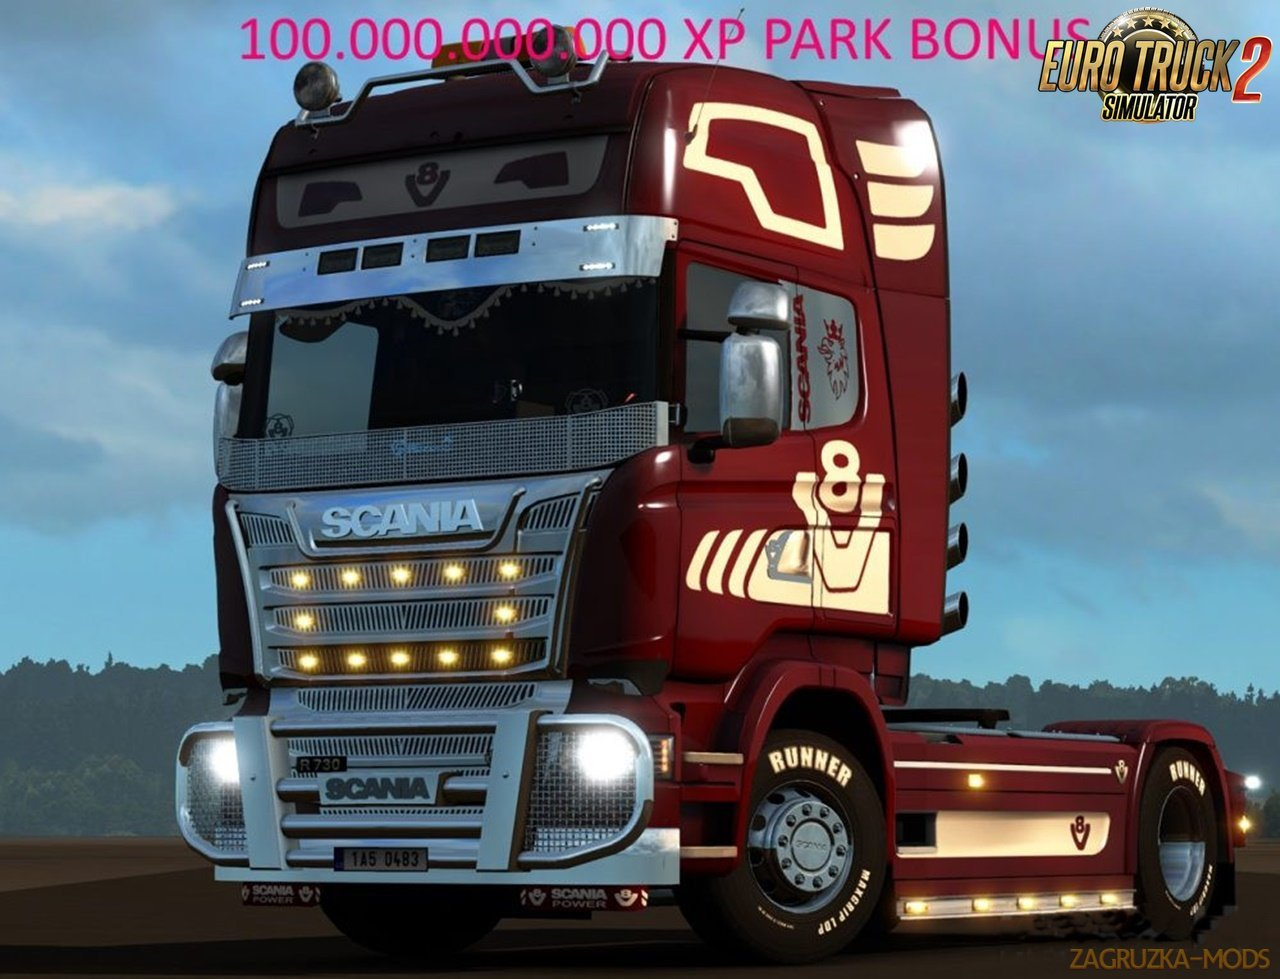 100.000.000.000 XP Park Bonus for Ets2